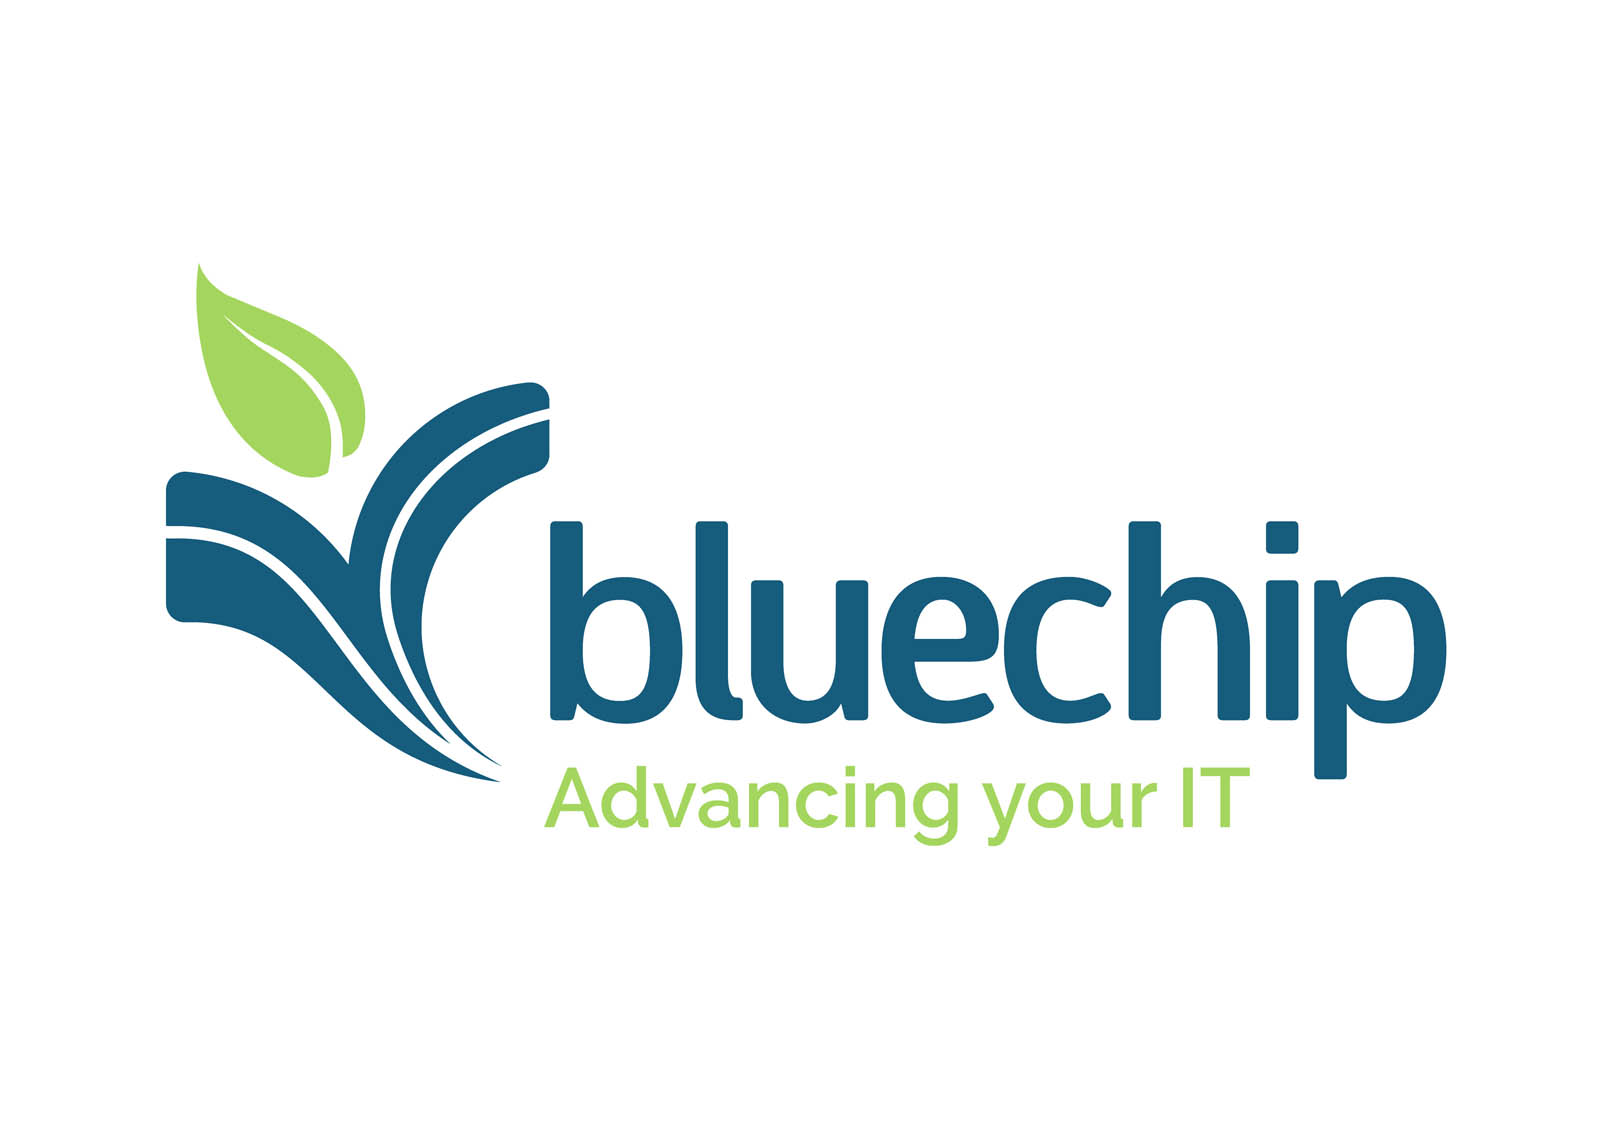 bluechip logo 2019 with strapline